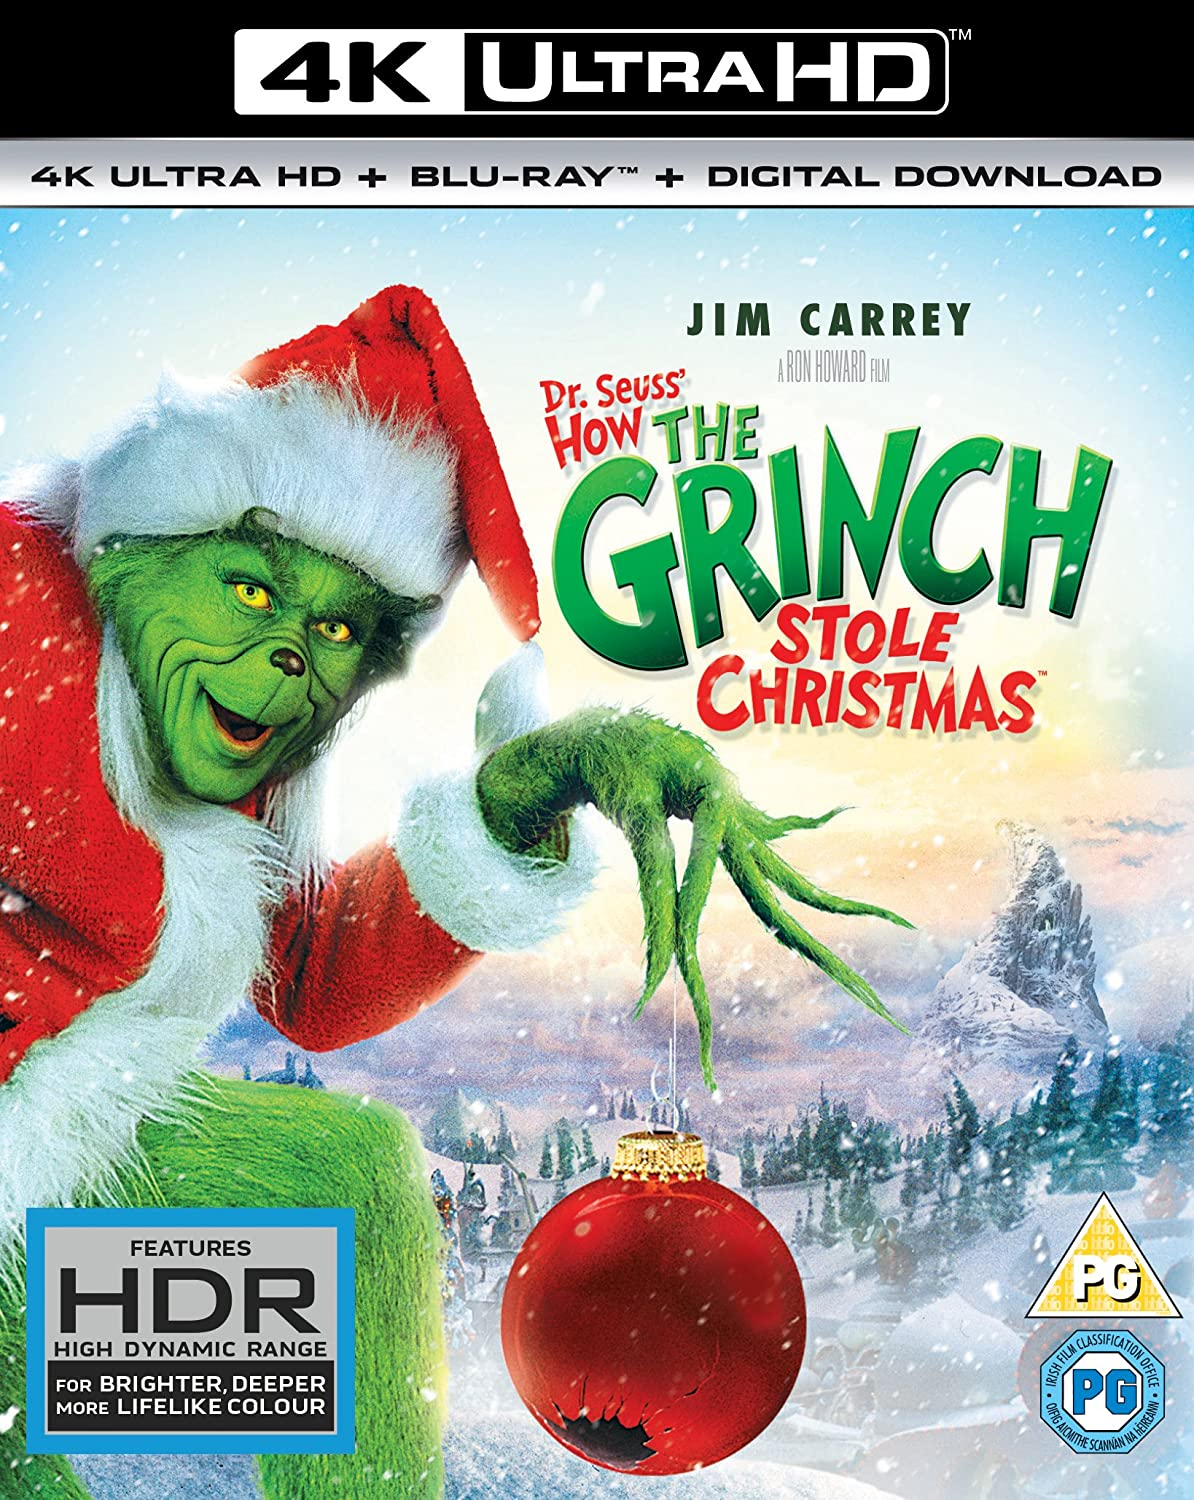 MOVIE - How the Grinch Stole Christmas (2000) [4K 2160p UHD Blu-Ray